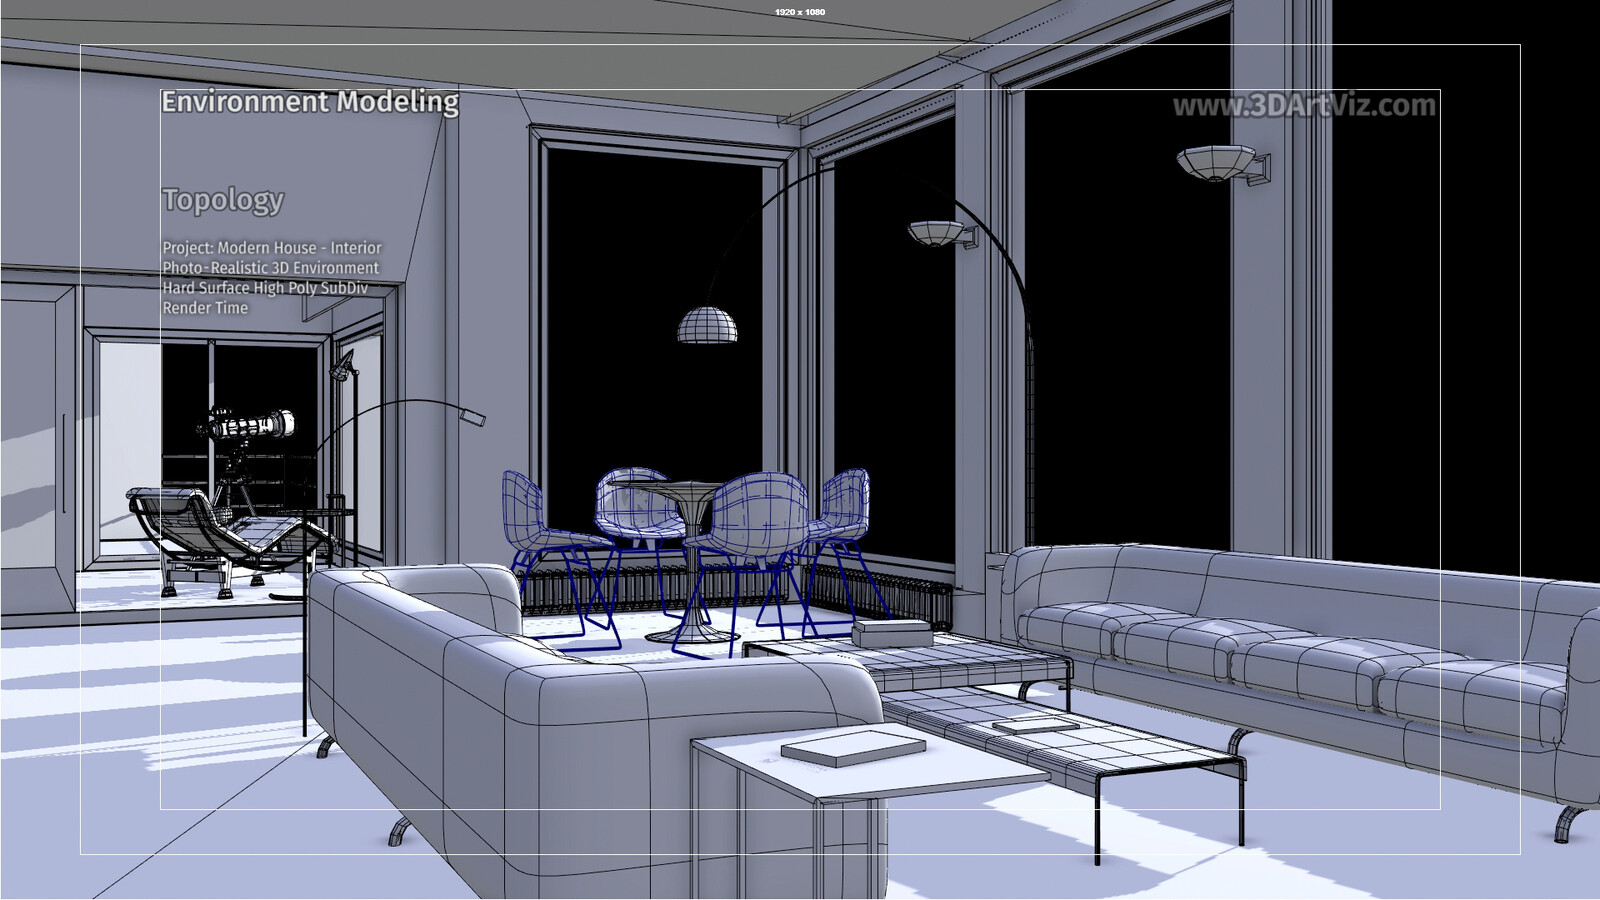 Shaded wireframes